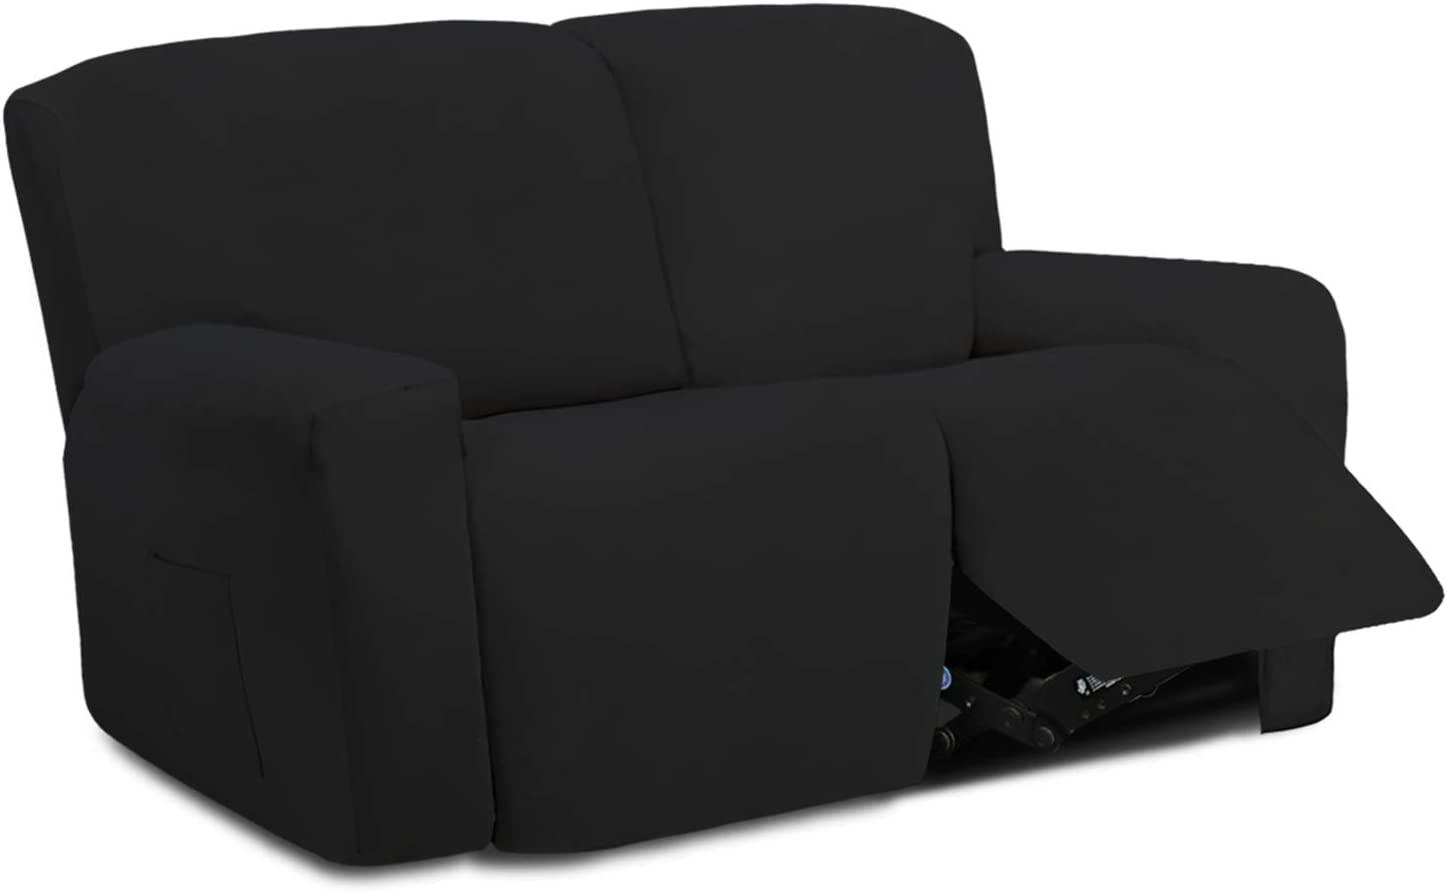 Easy-Going 6 Pieces Microfiber Stretch Sectional Recliner Sofa Slipcover Soft Fitted Fleece 2 Seats Couch Cover Washable Furniture Protector with Elasticity for Kids Pet(Recliner Loveseat,Black)